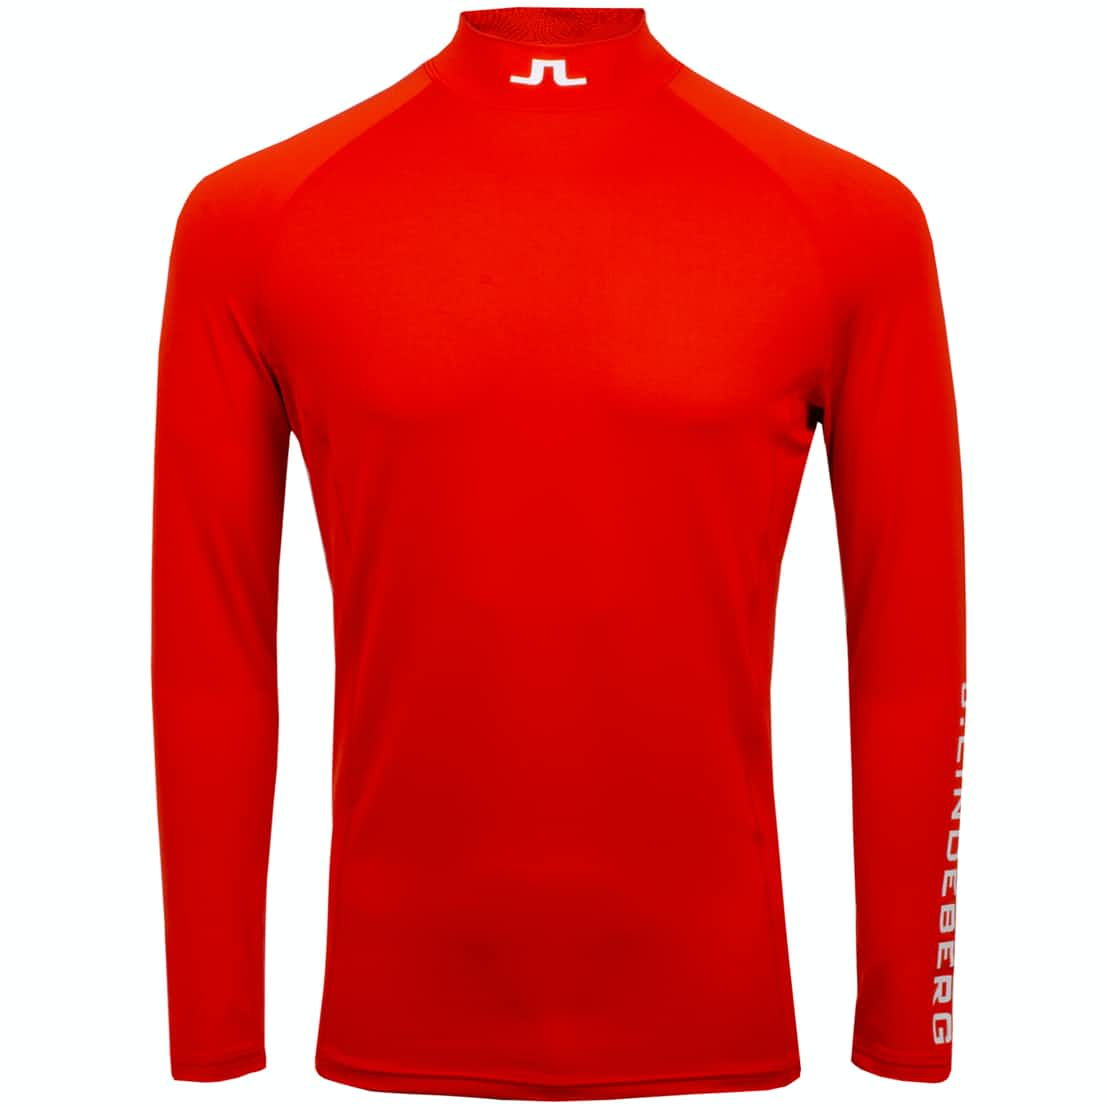 Aello Slim Soft Compression Racing Red - AW18